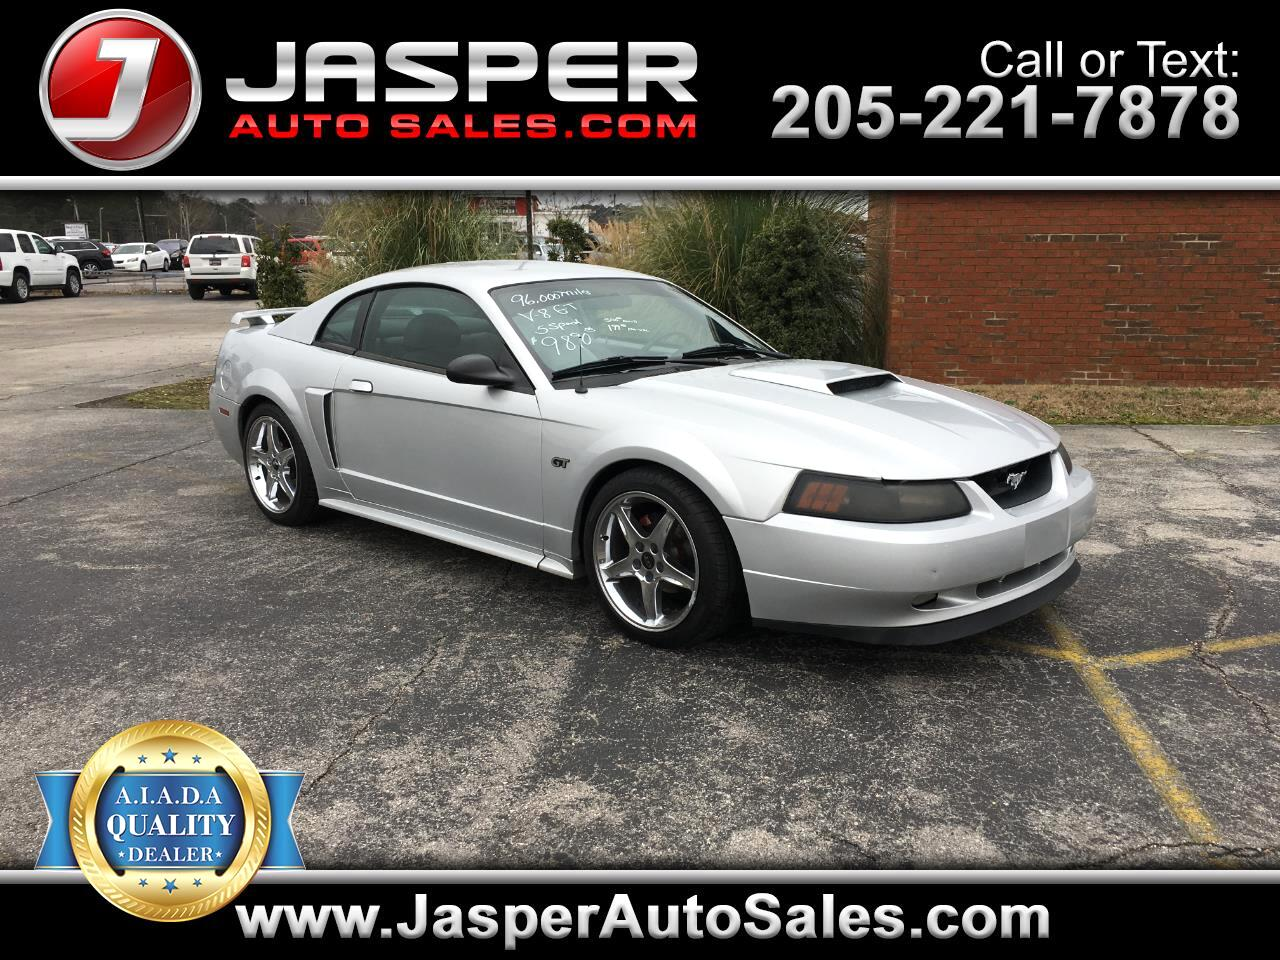 2003 Ford Mustang 2dr Cpe GT Deluxe